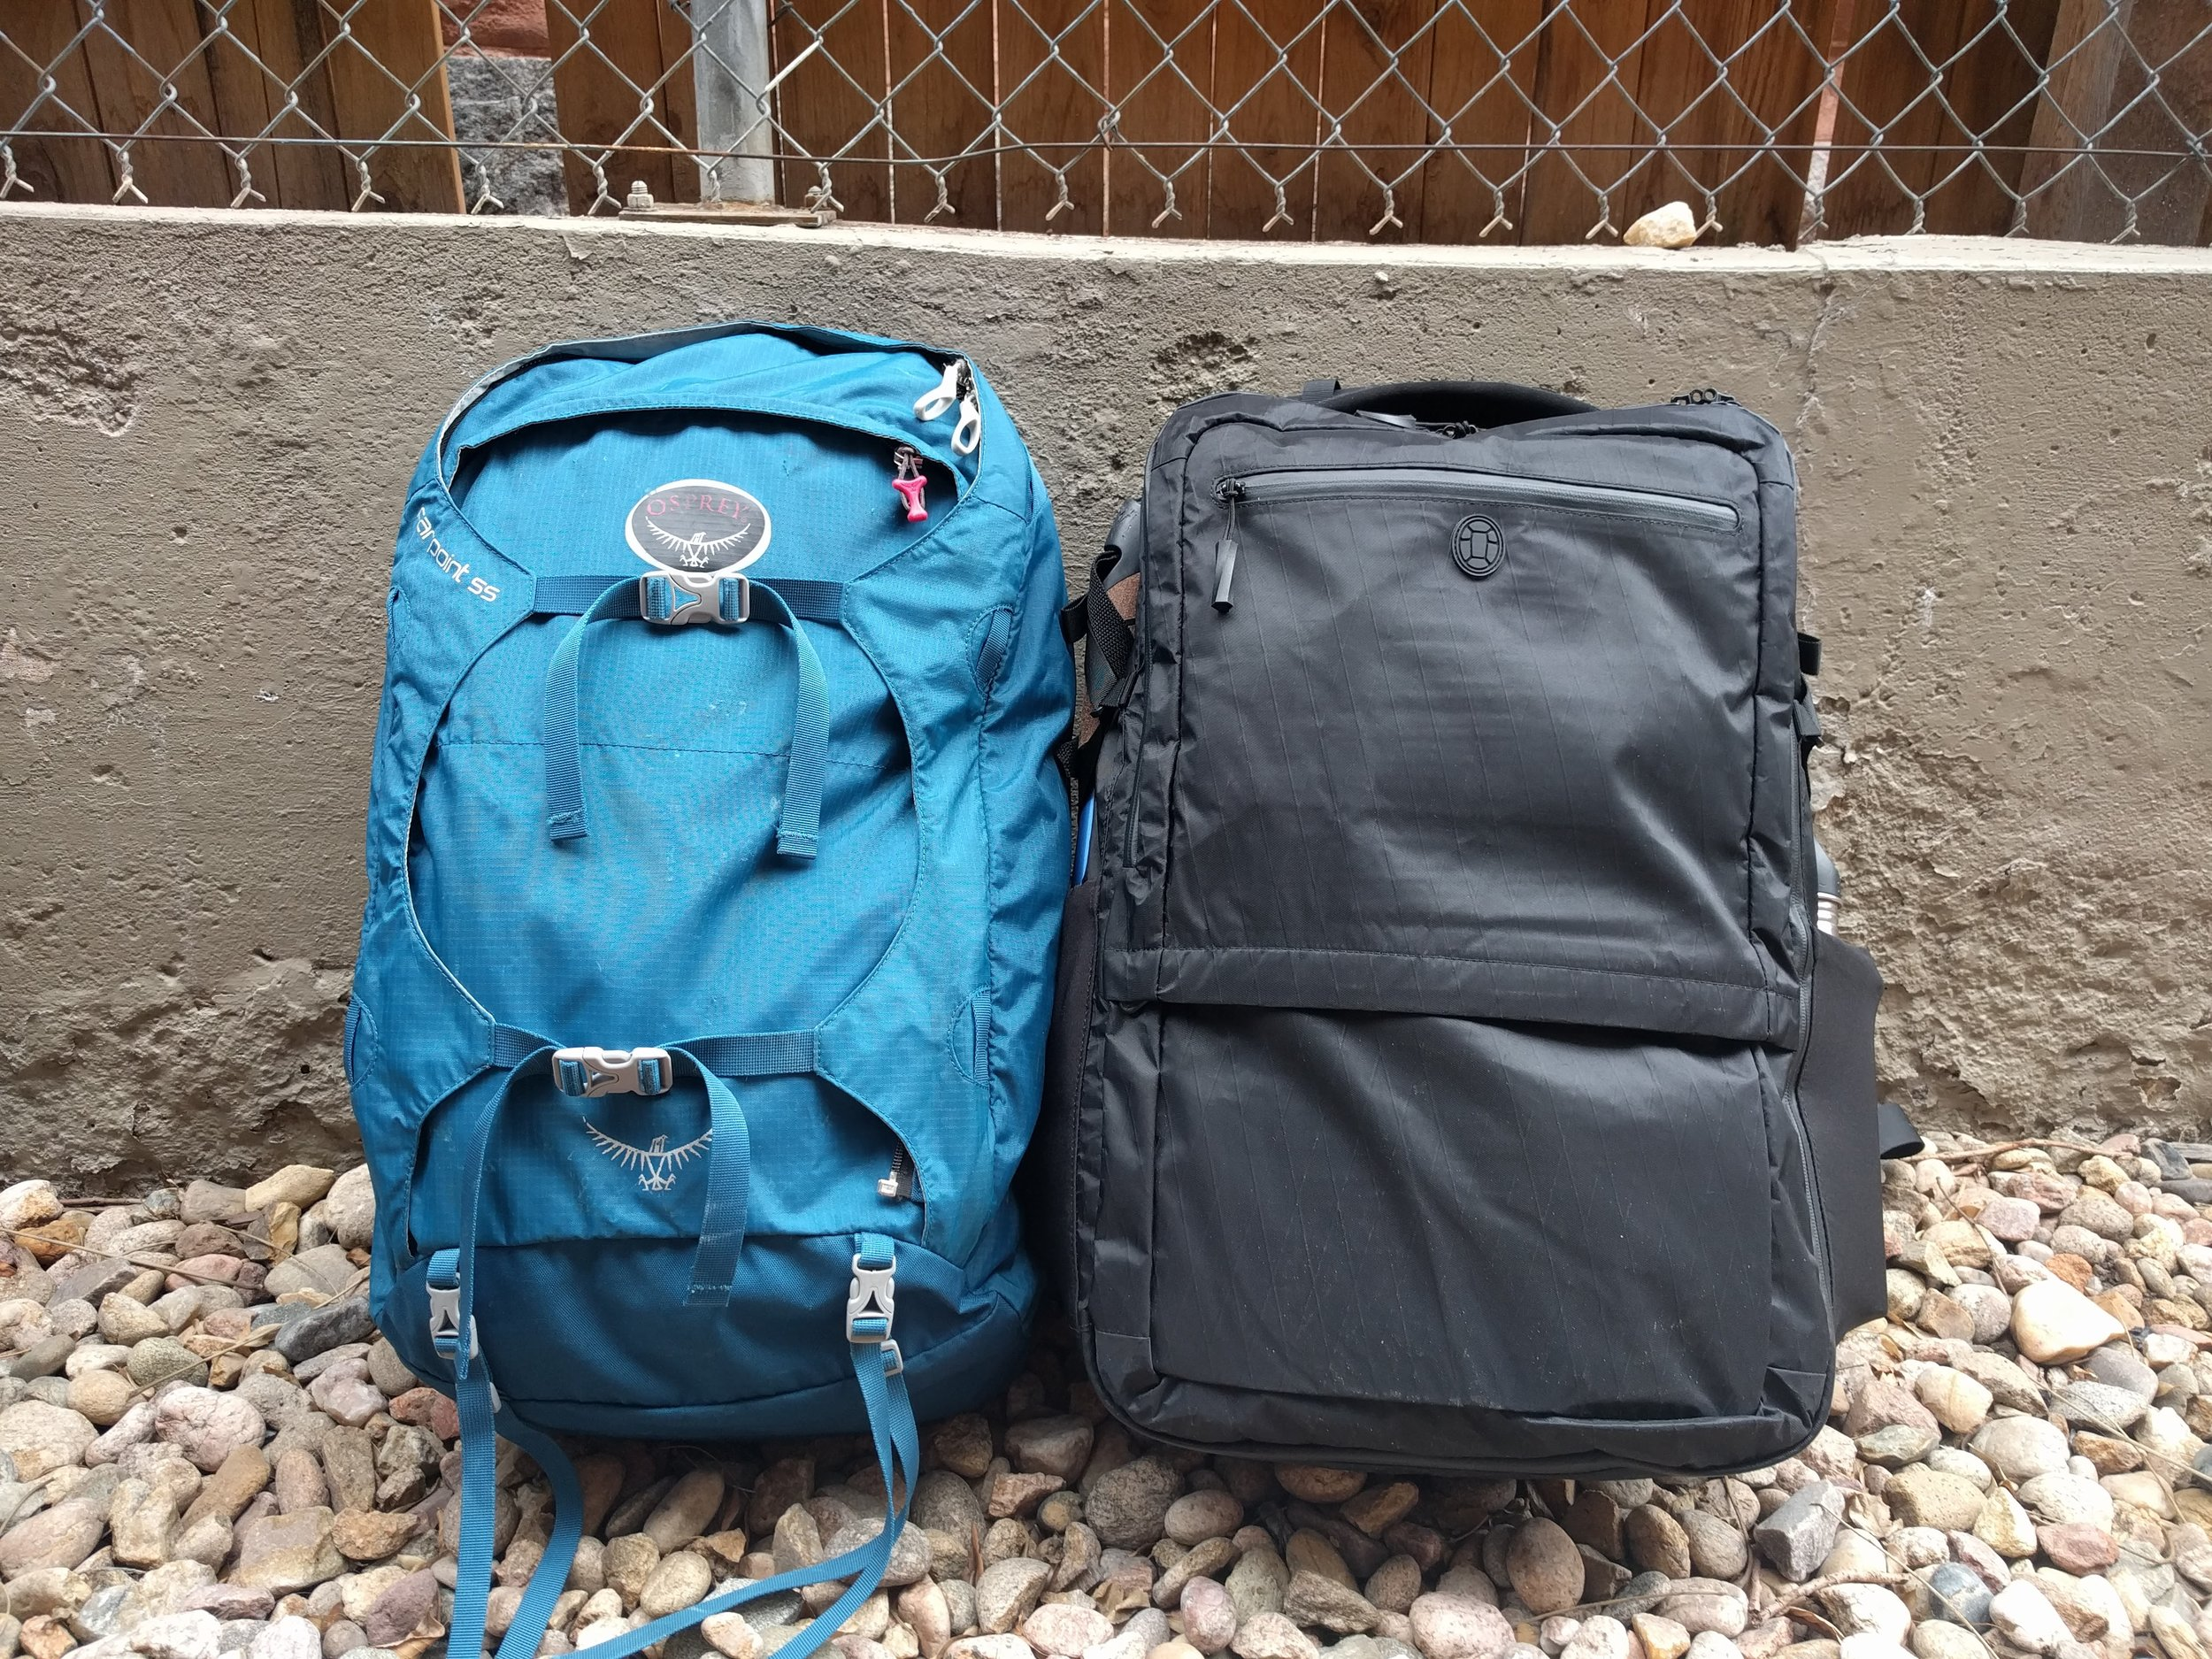 23eac8dcc Tortuga Outbreaker vs Osprey Farpoint 55- What's the best bag for long-term  travel